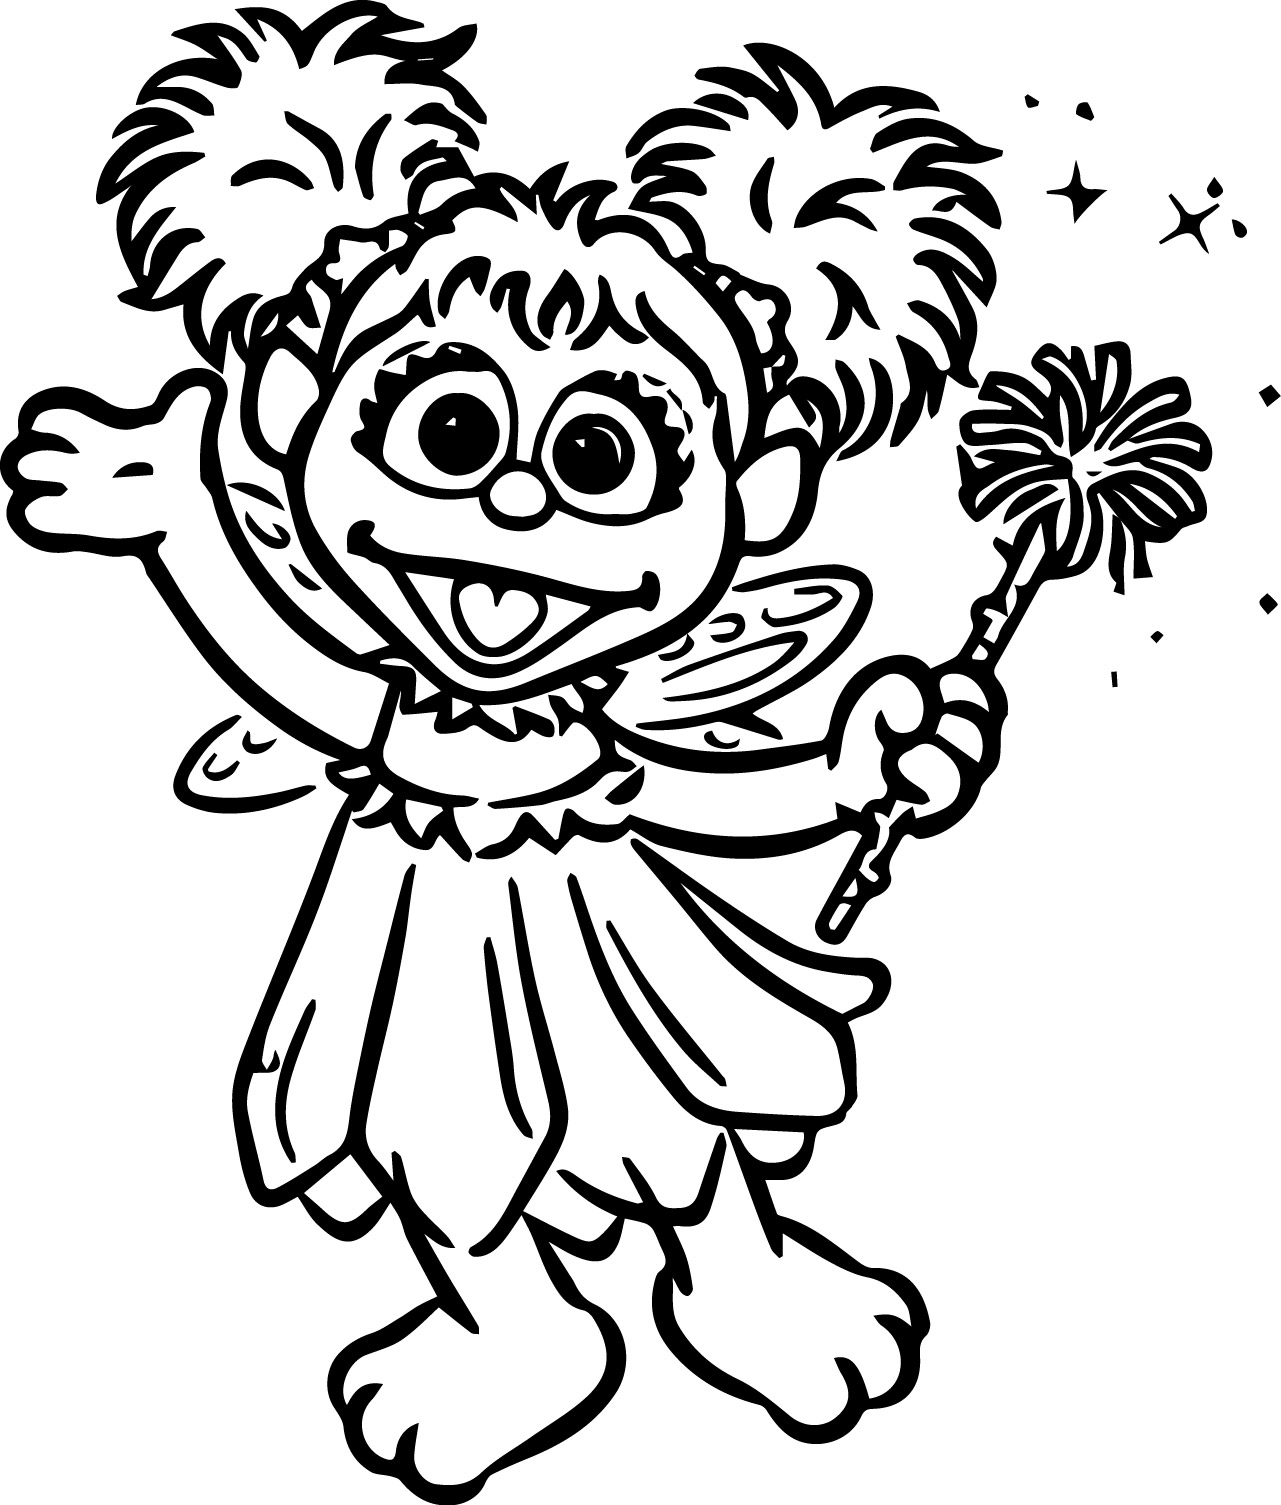 Coloring Pages Abby Coloring Pages abby cadabby coloring pages wecoloringpage pages